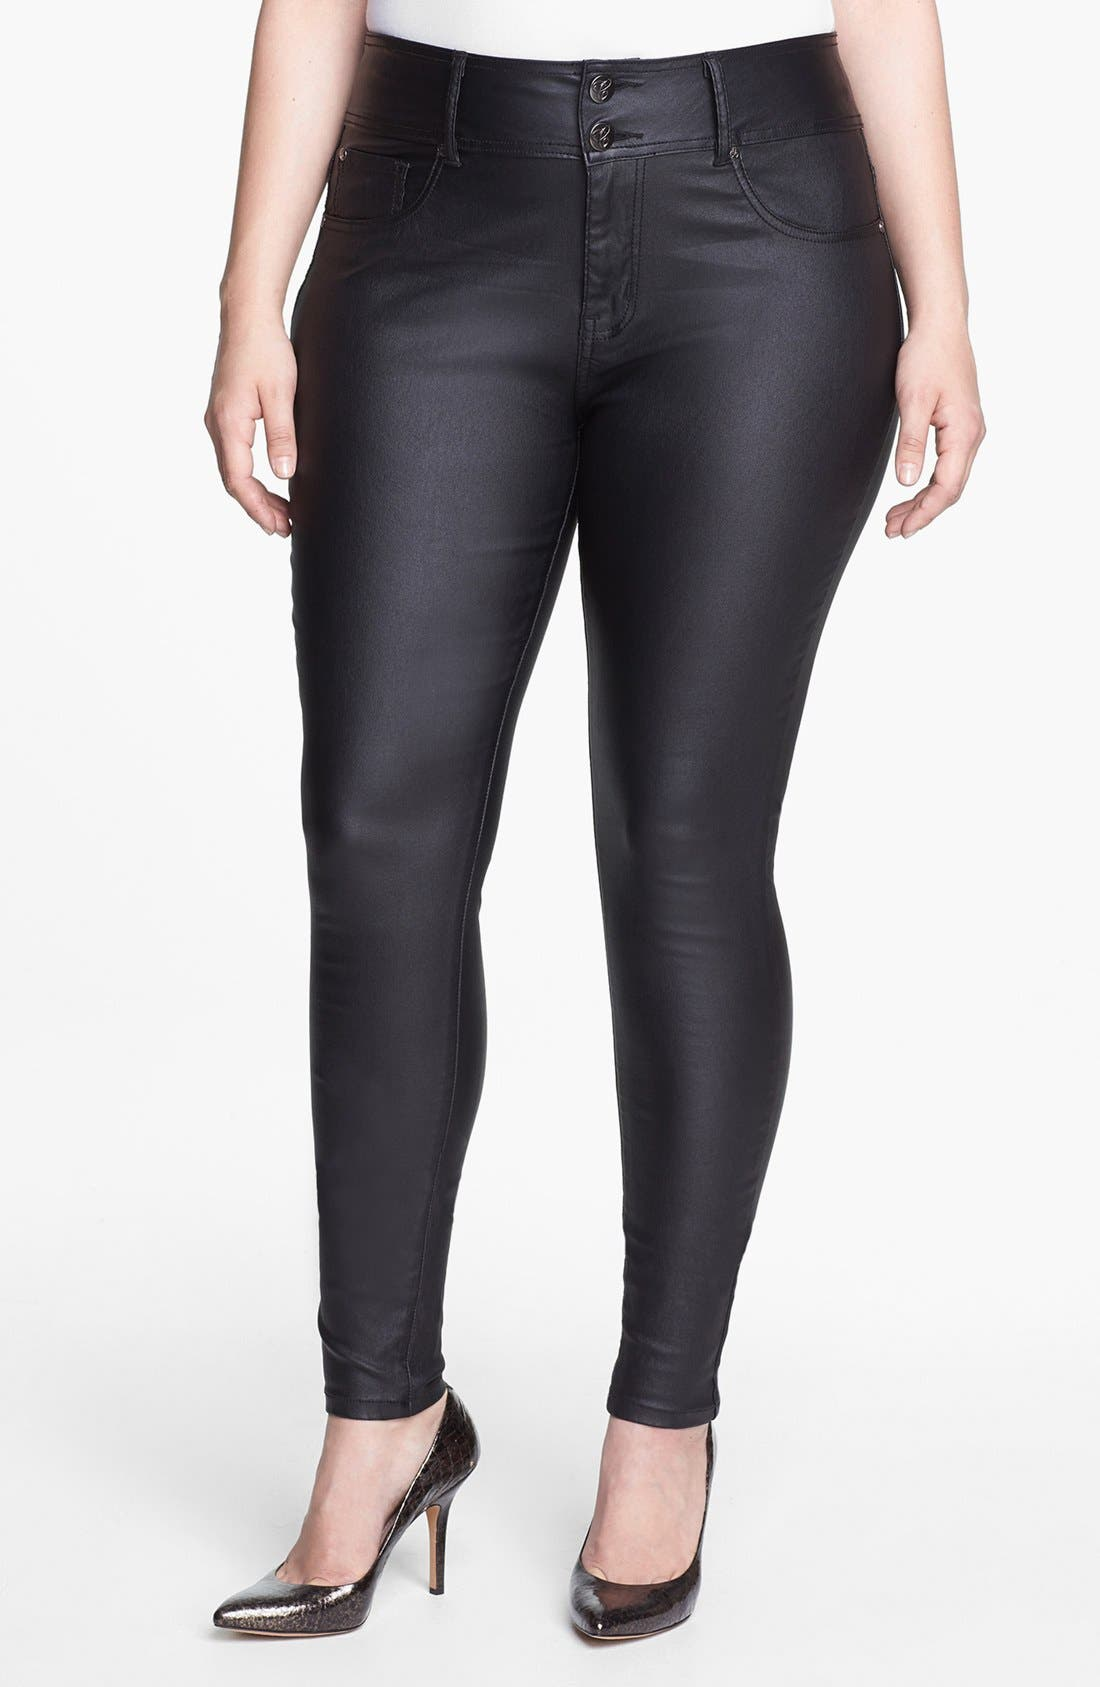 City Chic Wet Look Stretch Skinny Jeans (Plus Size)